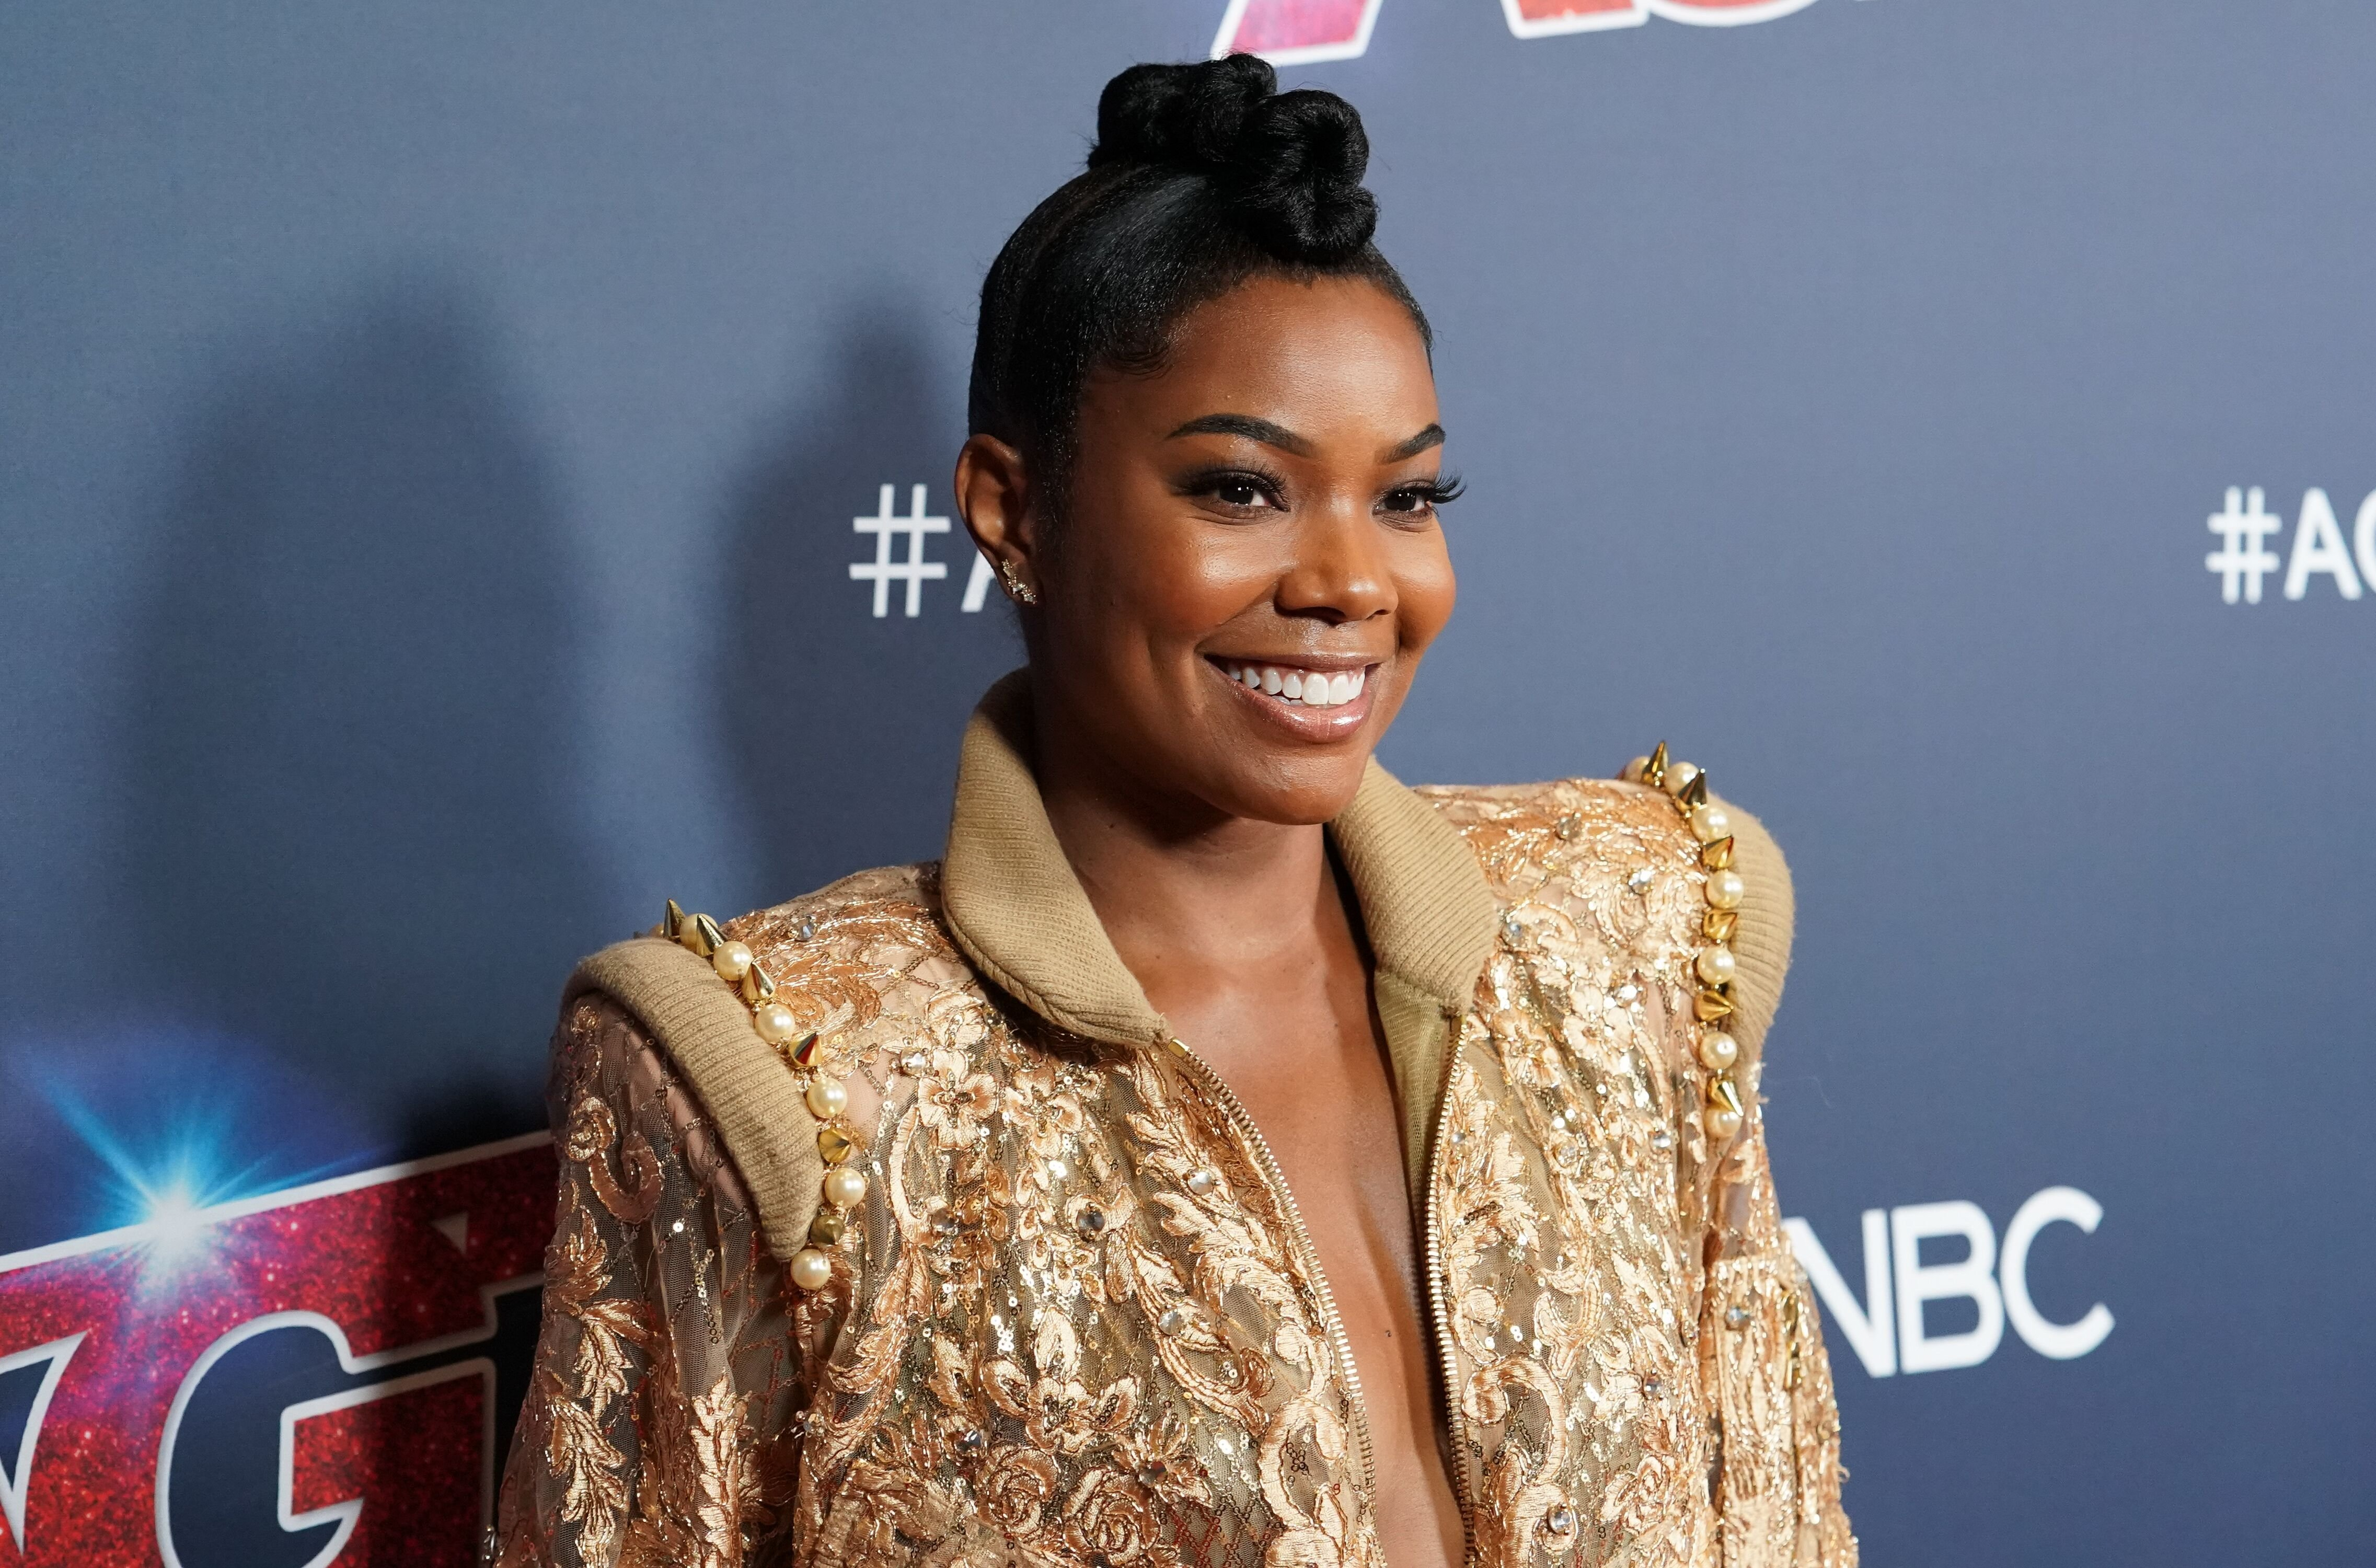 """Gabrielle Union at the """"America's Got Talent"""" premiere/ Source: Getty Images"""